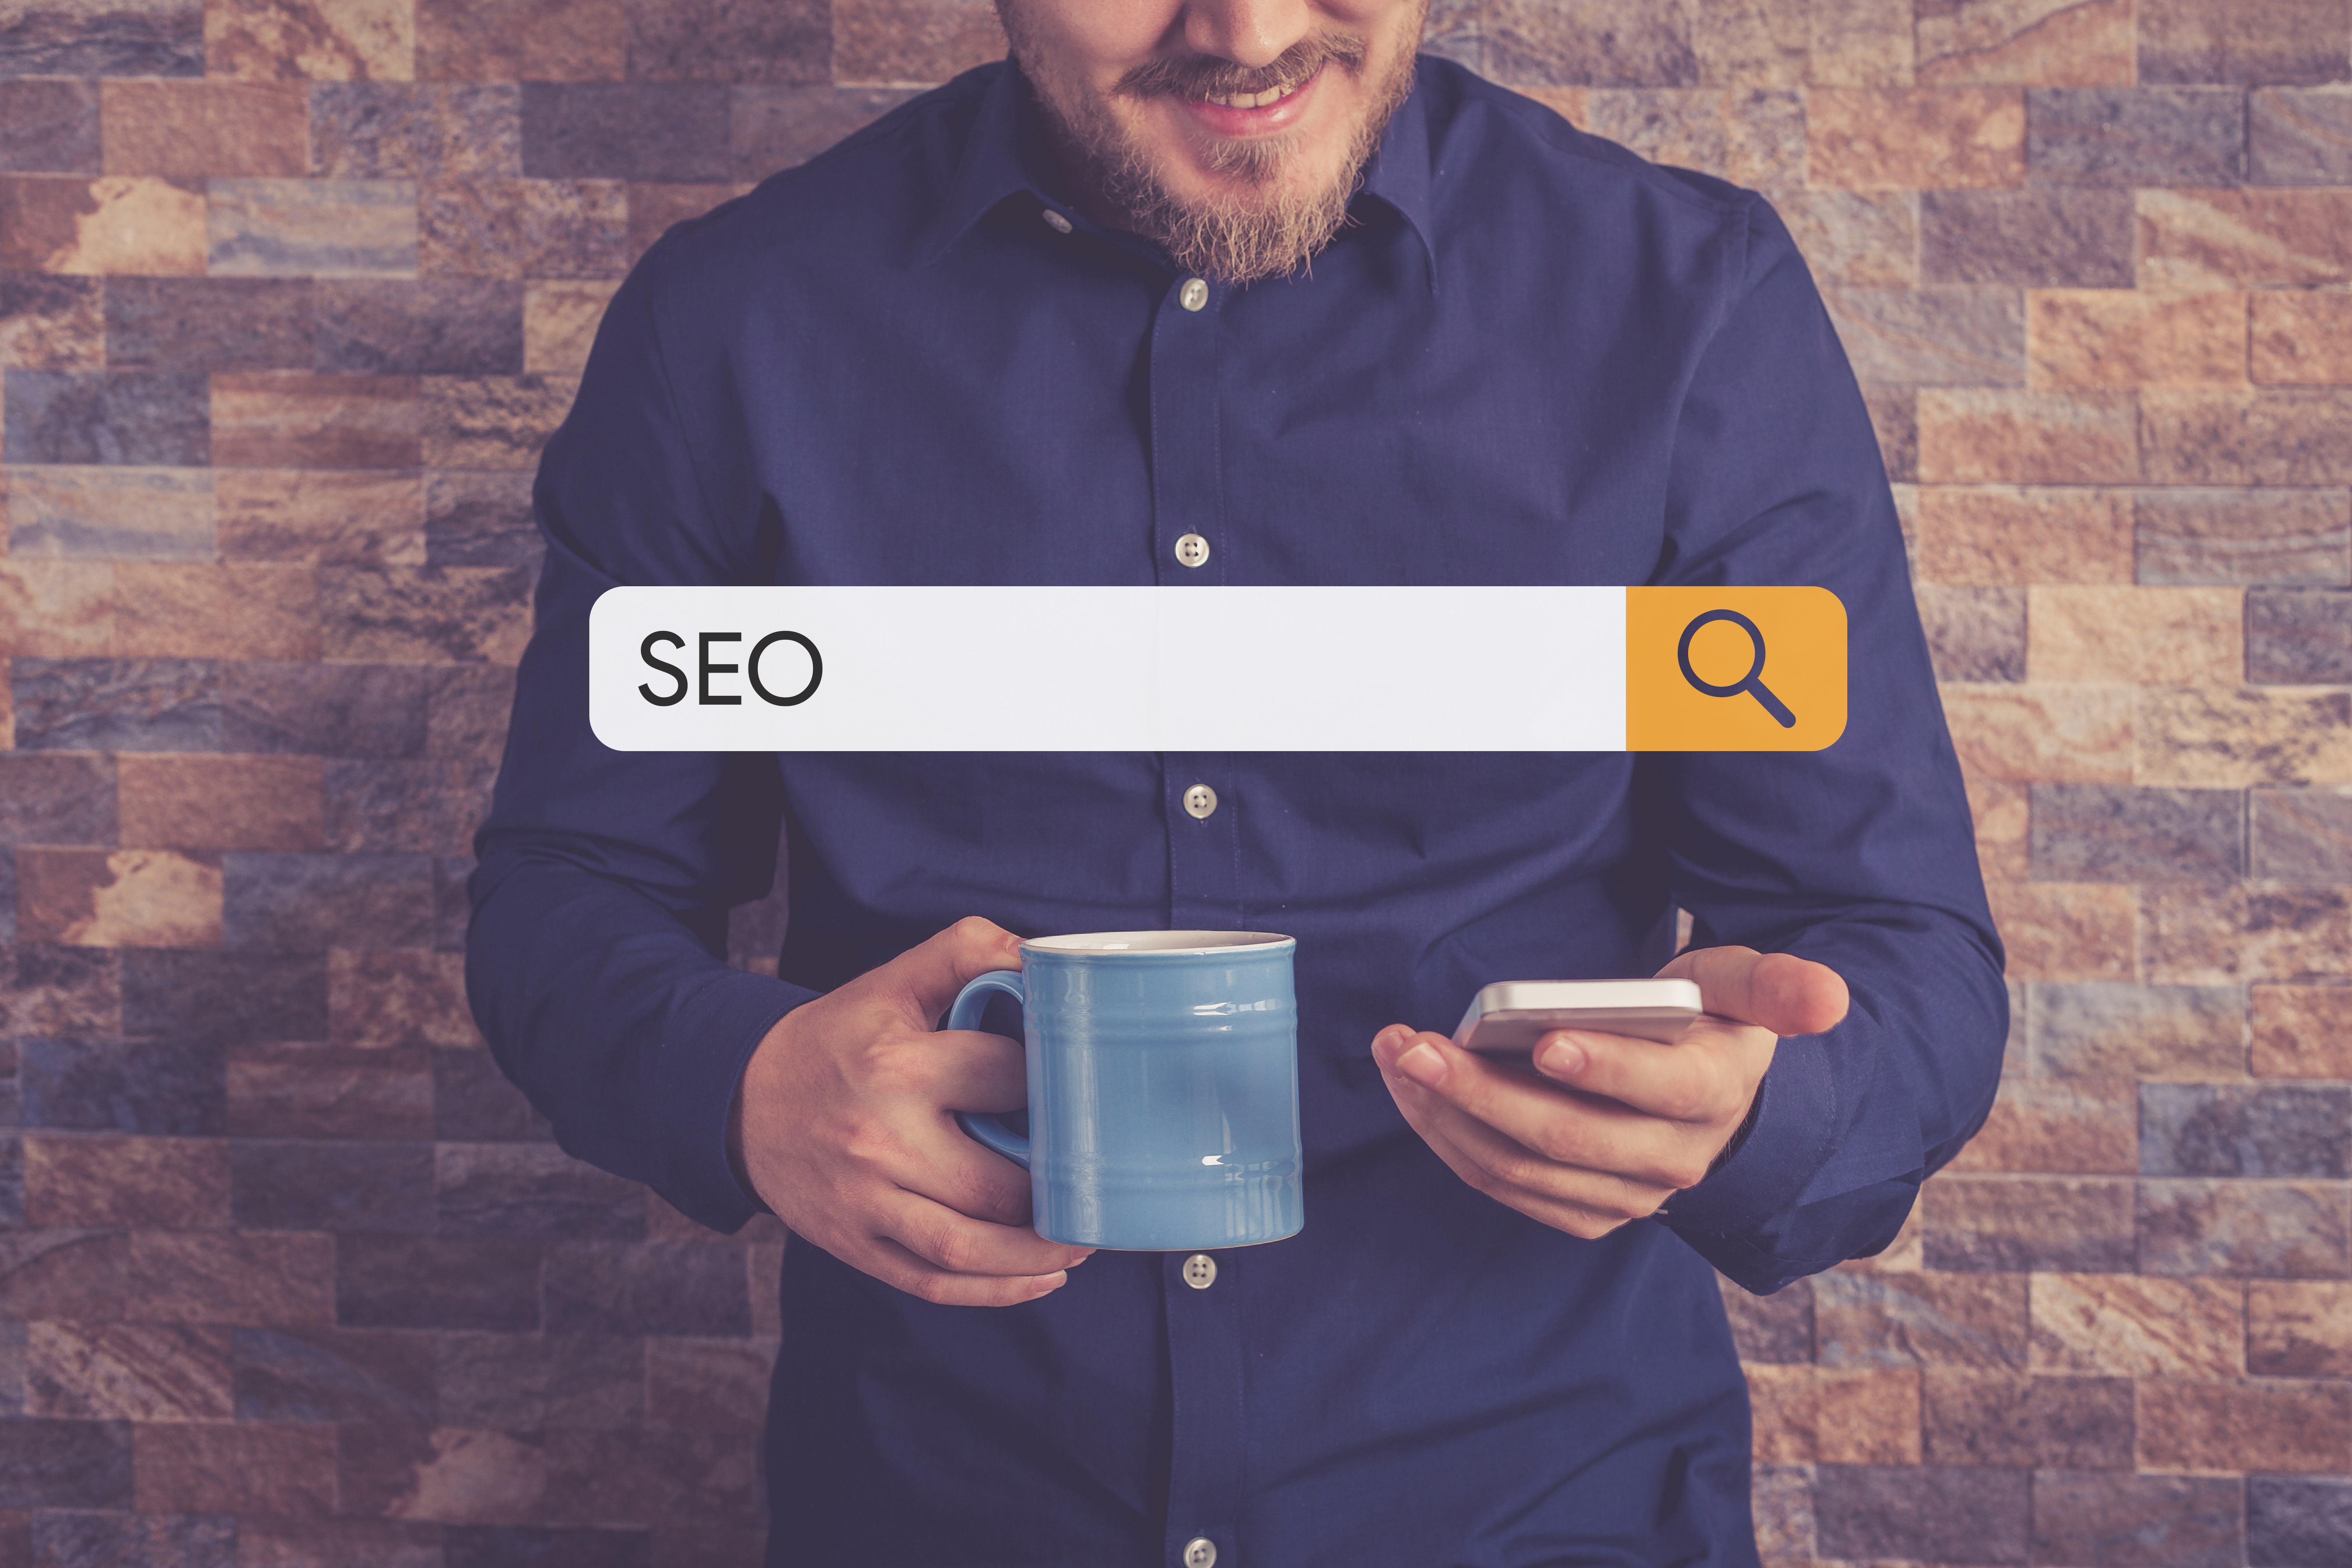 guy doing an seo search